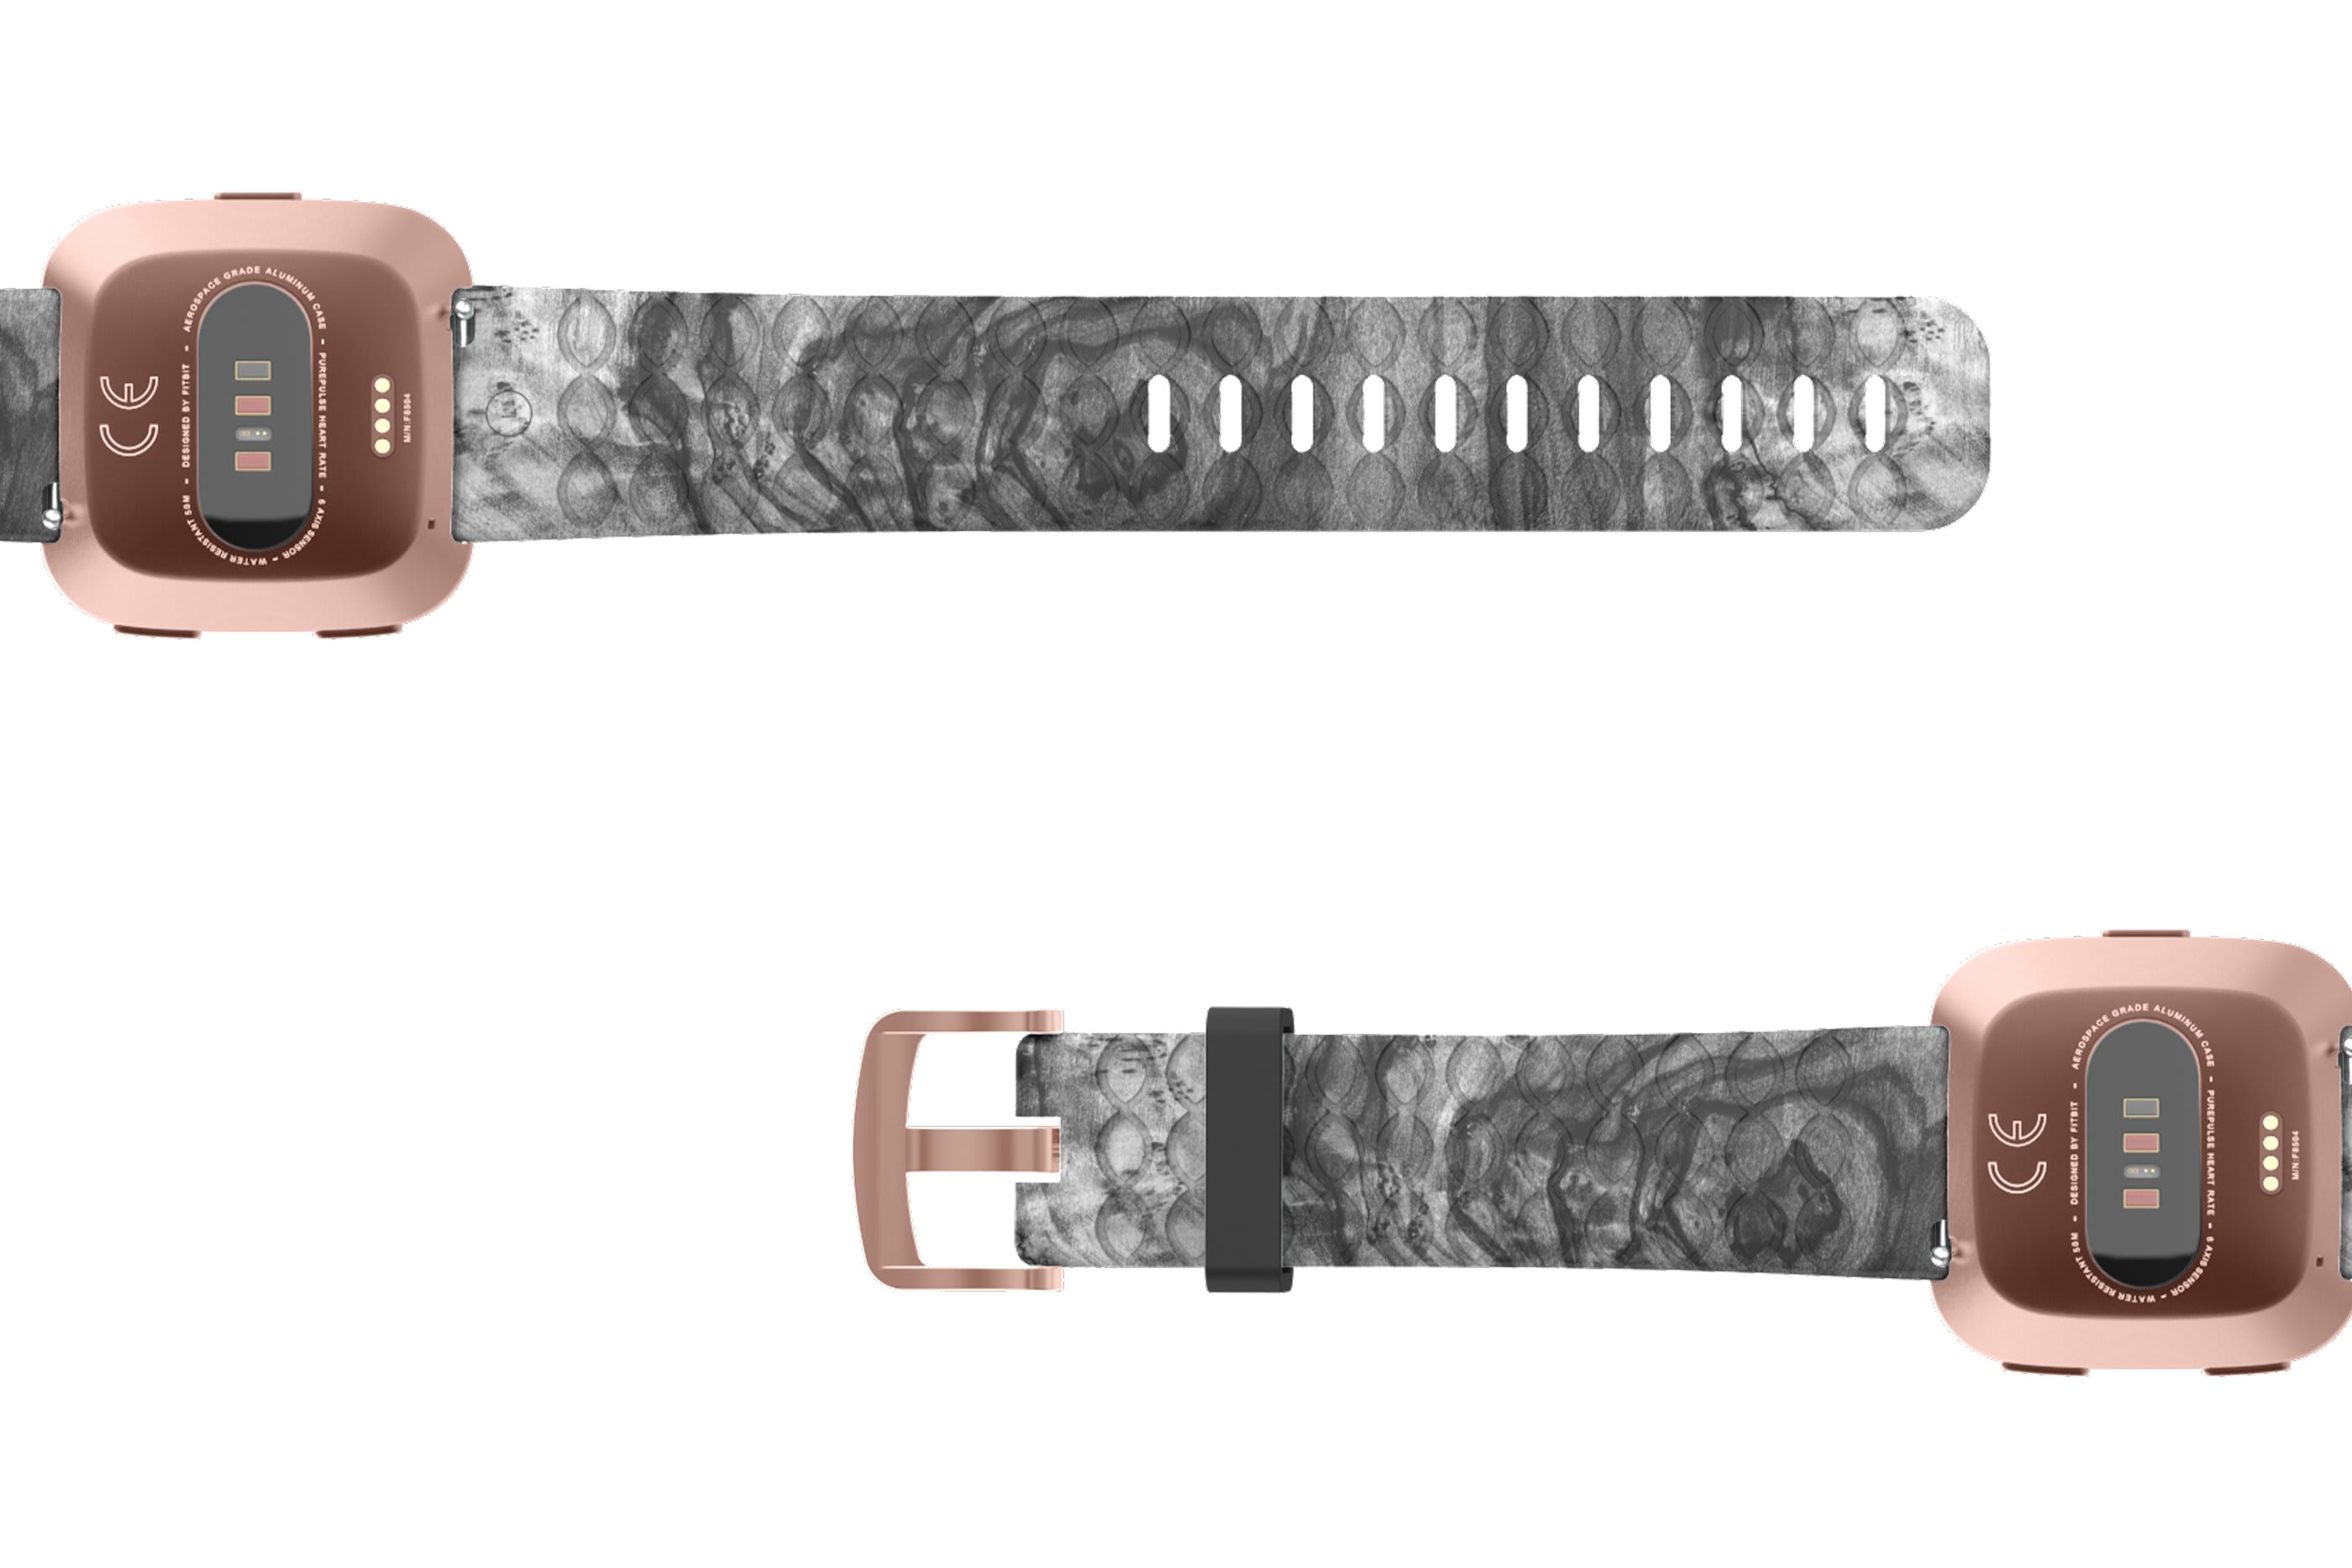 Nomad Relic Fitbit Versa   watch band with rose gold hardware viewed bottom up